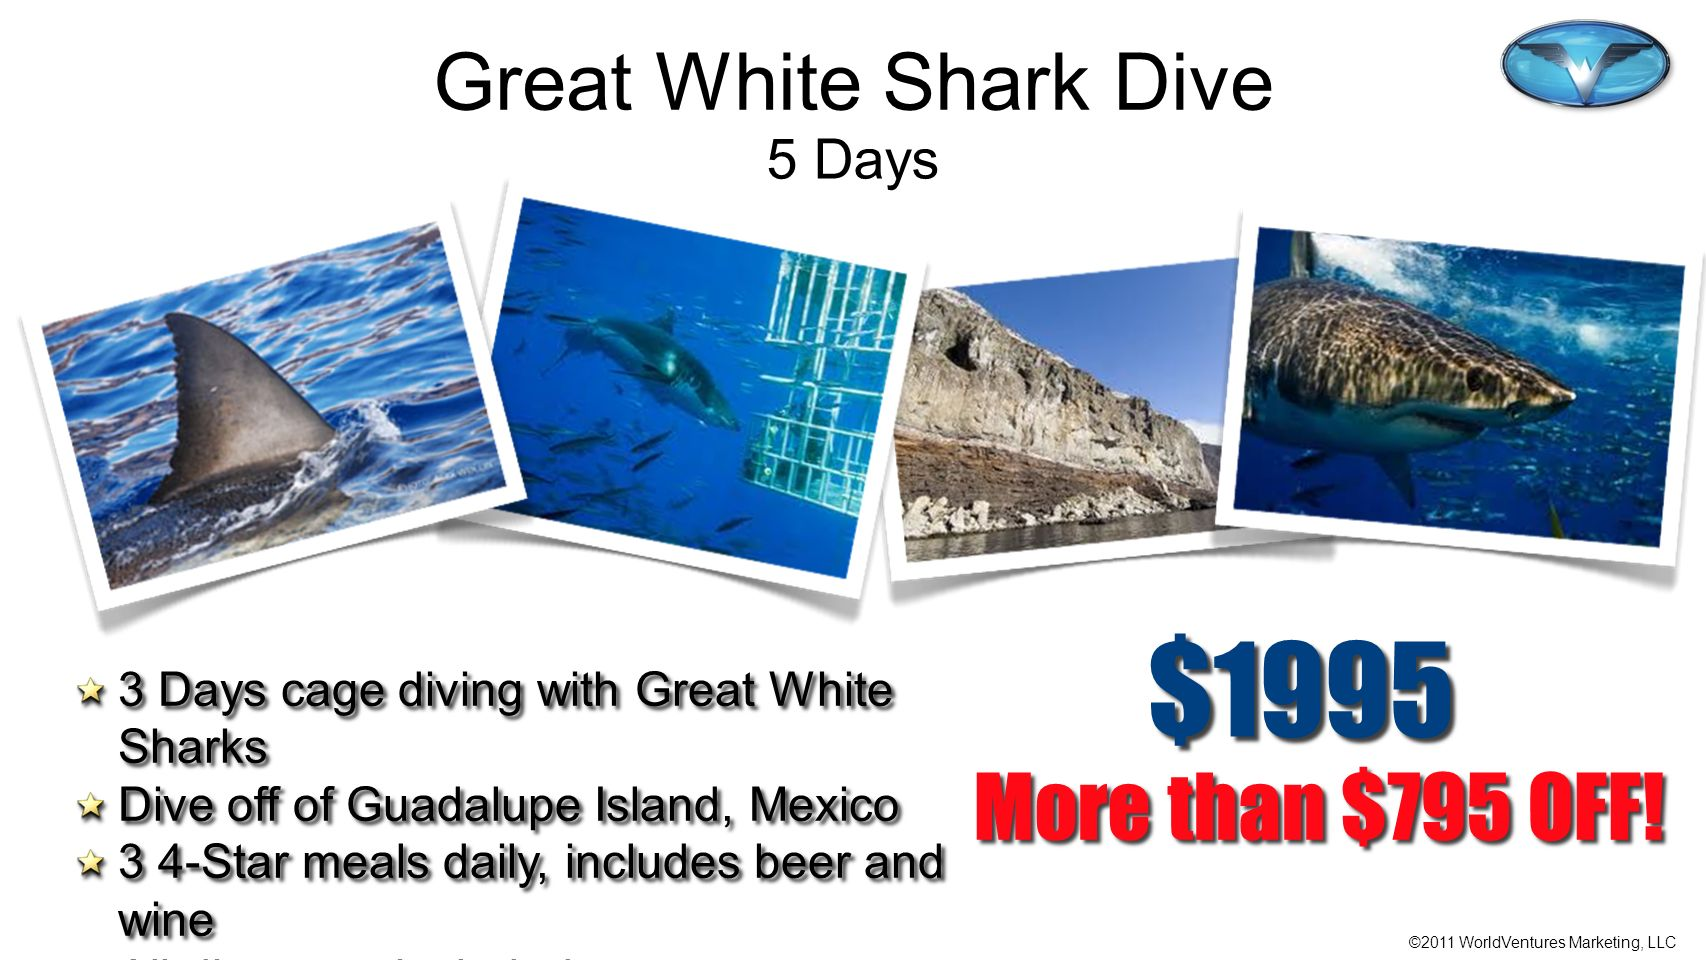 ©2011 WorldVentures Marketing, LLC More than $795 OFF! $1995 3 Days cage diving with Great White Sharks Dive off of Guadalupe Island, Mexico 3 4-Star